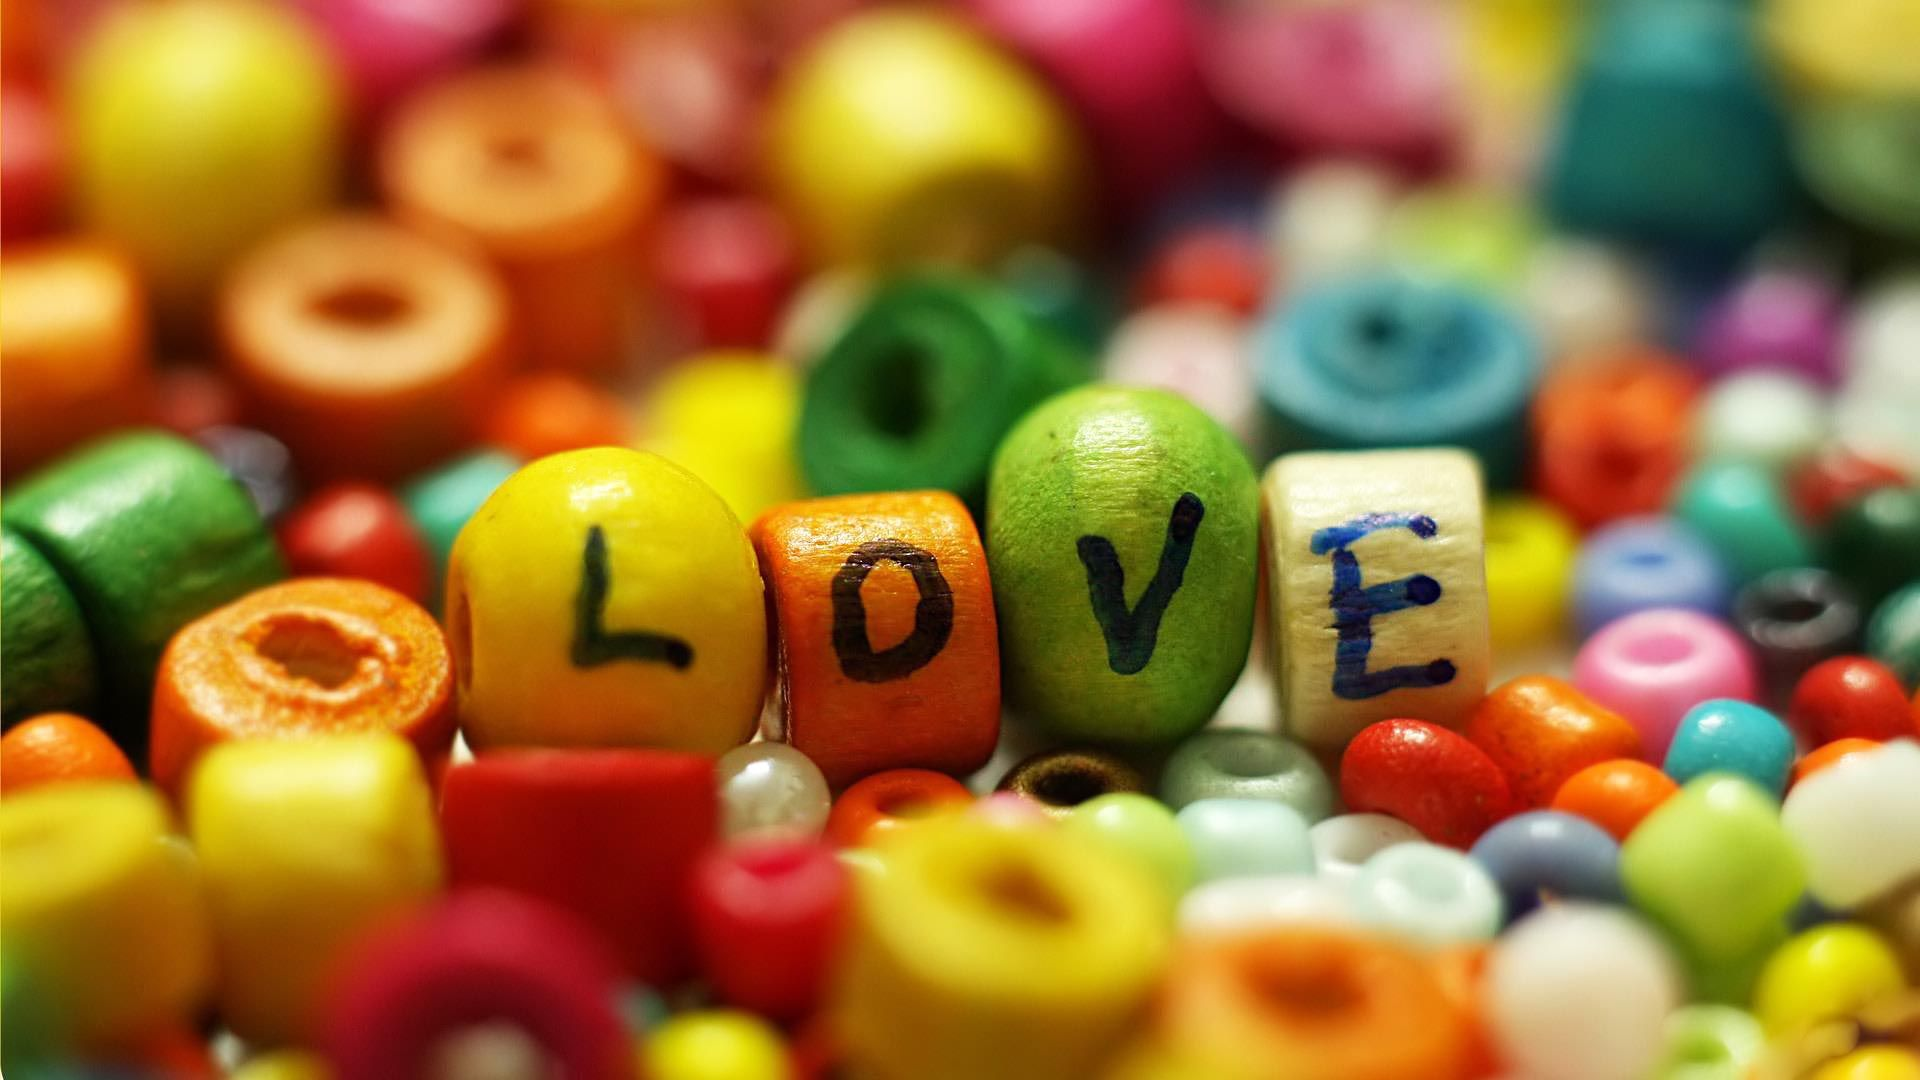 Pin By Mike Bernabe On Creative Things Cute Love Wallpapers Love Wallpaper Love Images